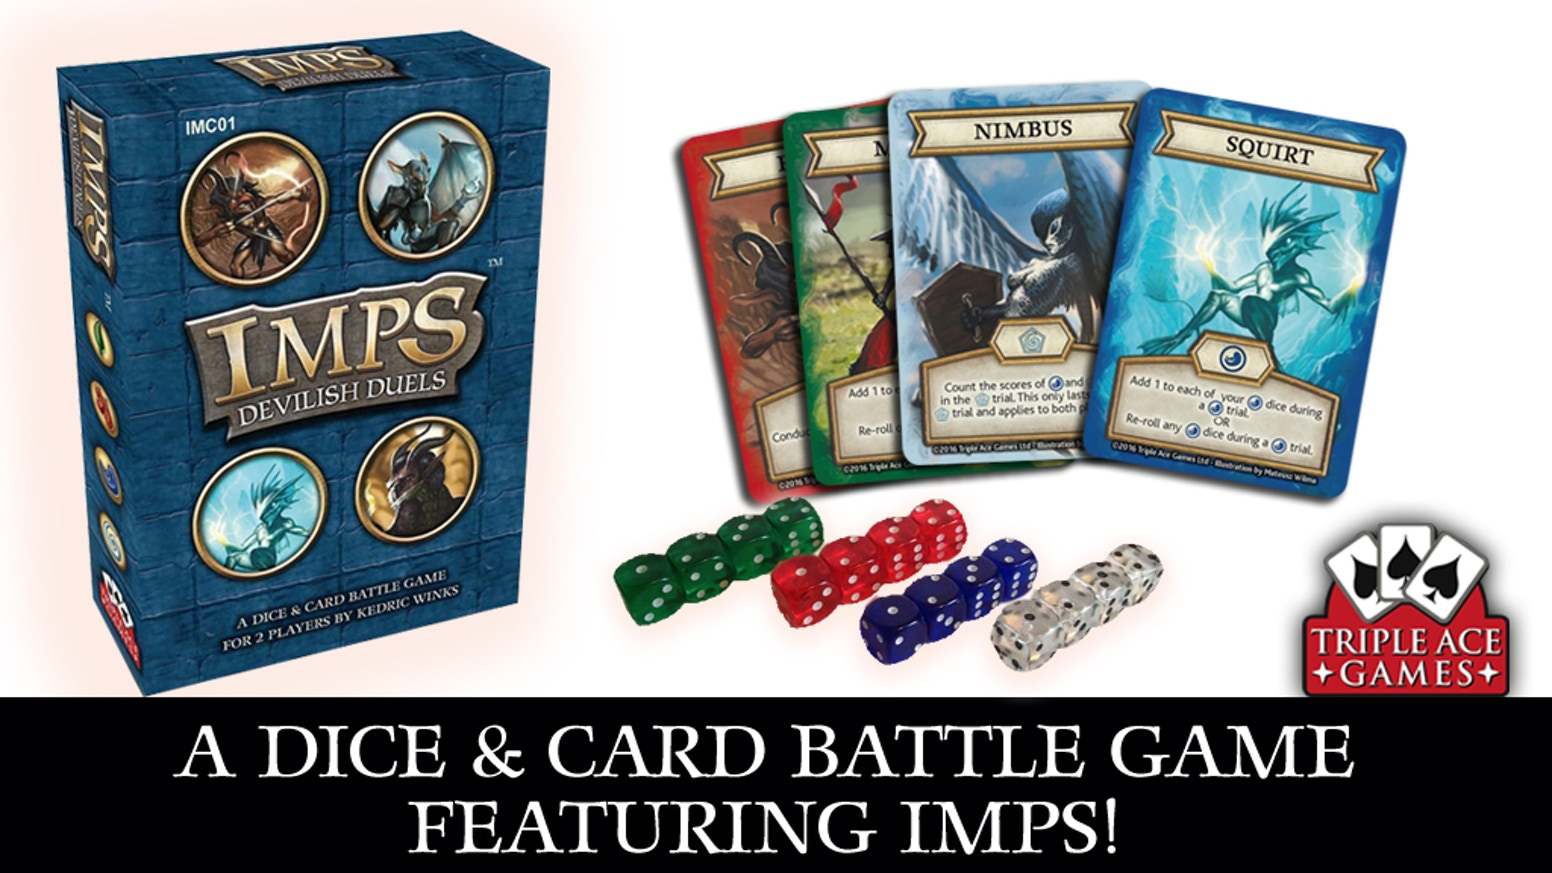 Imps Devilish Duels is a card and battle game for 2 players. Build a dice pool and lead a party of imps into elemental battle!